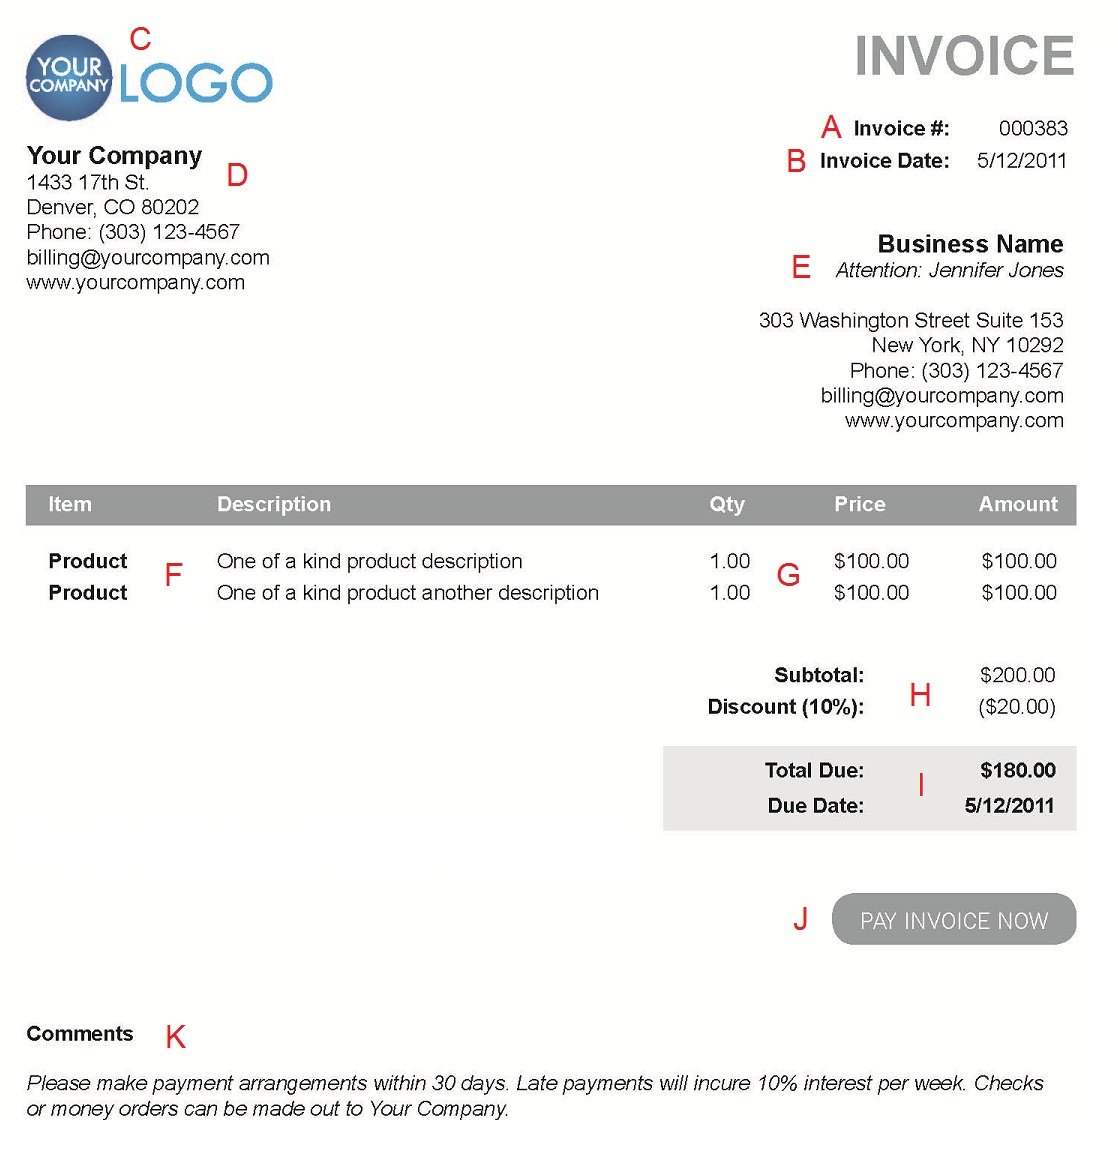 Musclebuildingtipsus  Pretty The  Different Sections Of An Electronic Payment Invoice With Handsome A  With Beauteous Avis E Receipt Also Target No Receipt Return Policy In Addition Receipt Book App And Receipts For Cash As Well As Autozone Return Without Receipt Additionally Best Buy Return No Receipt From Paysimplecom With Musclebuildingtipsus  Handsome The  Different Sections Of An Electronic Payment Invoice With Beauteous A  And Pretty Avis E Receipt Also Target No Receipt Return Policy In Addition Receipt Book App From Paysimplecom